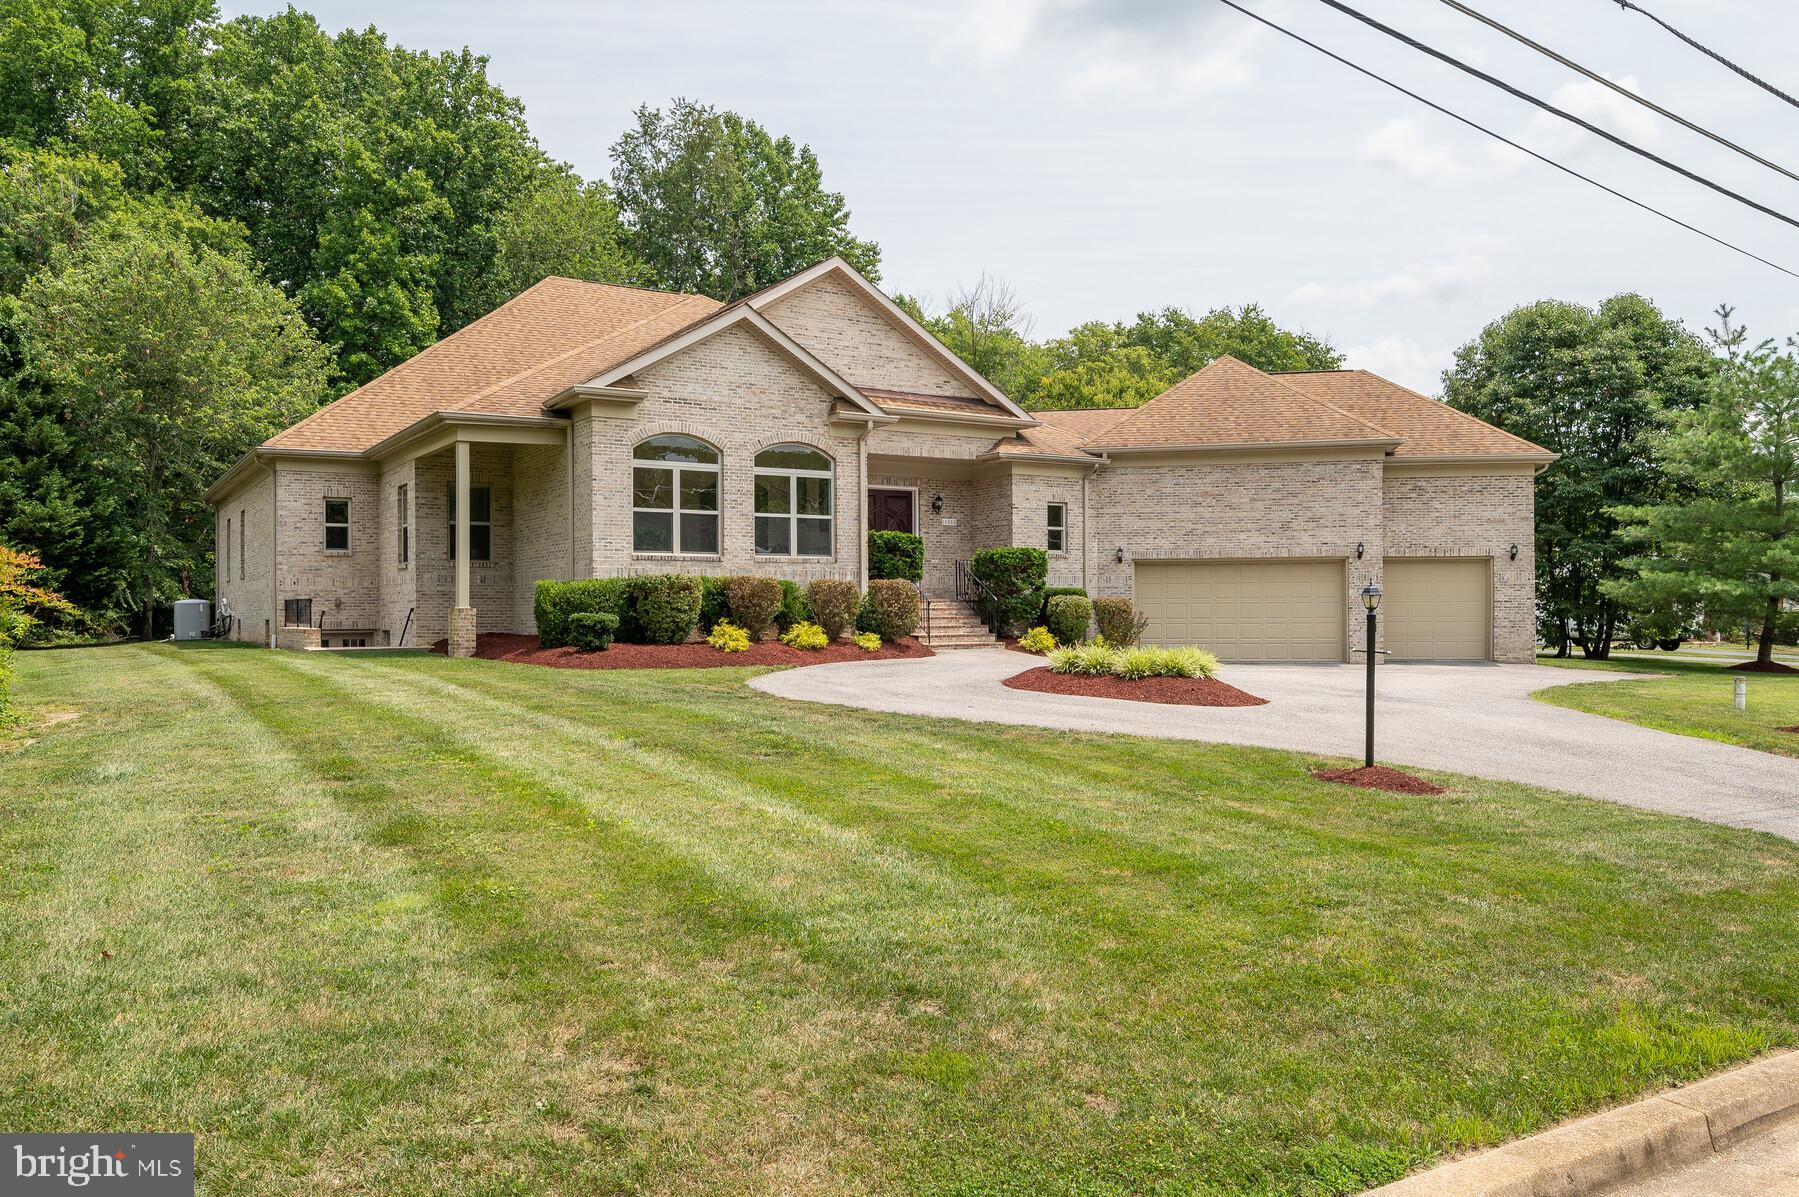 MAGNIFICENT, CUSTOM-BUILT all-brick  Contemporary Home  with a grand front circular drive way , over